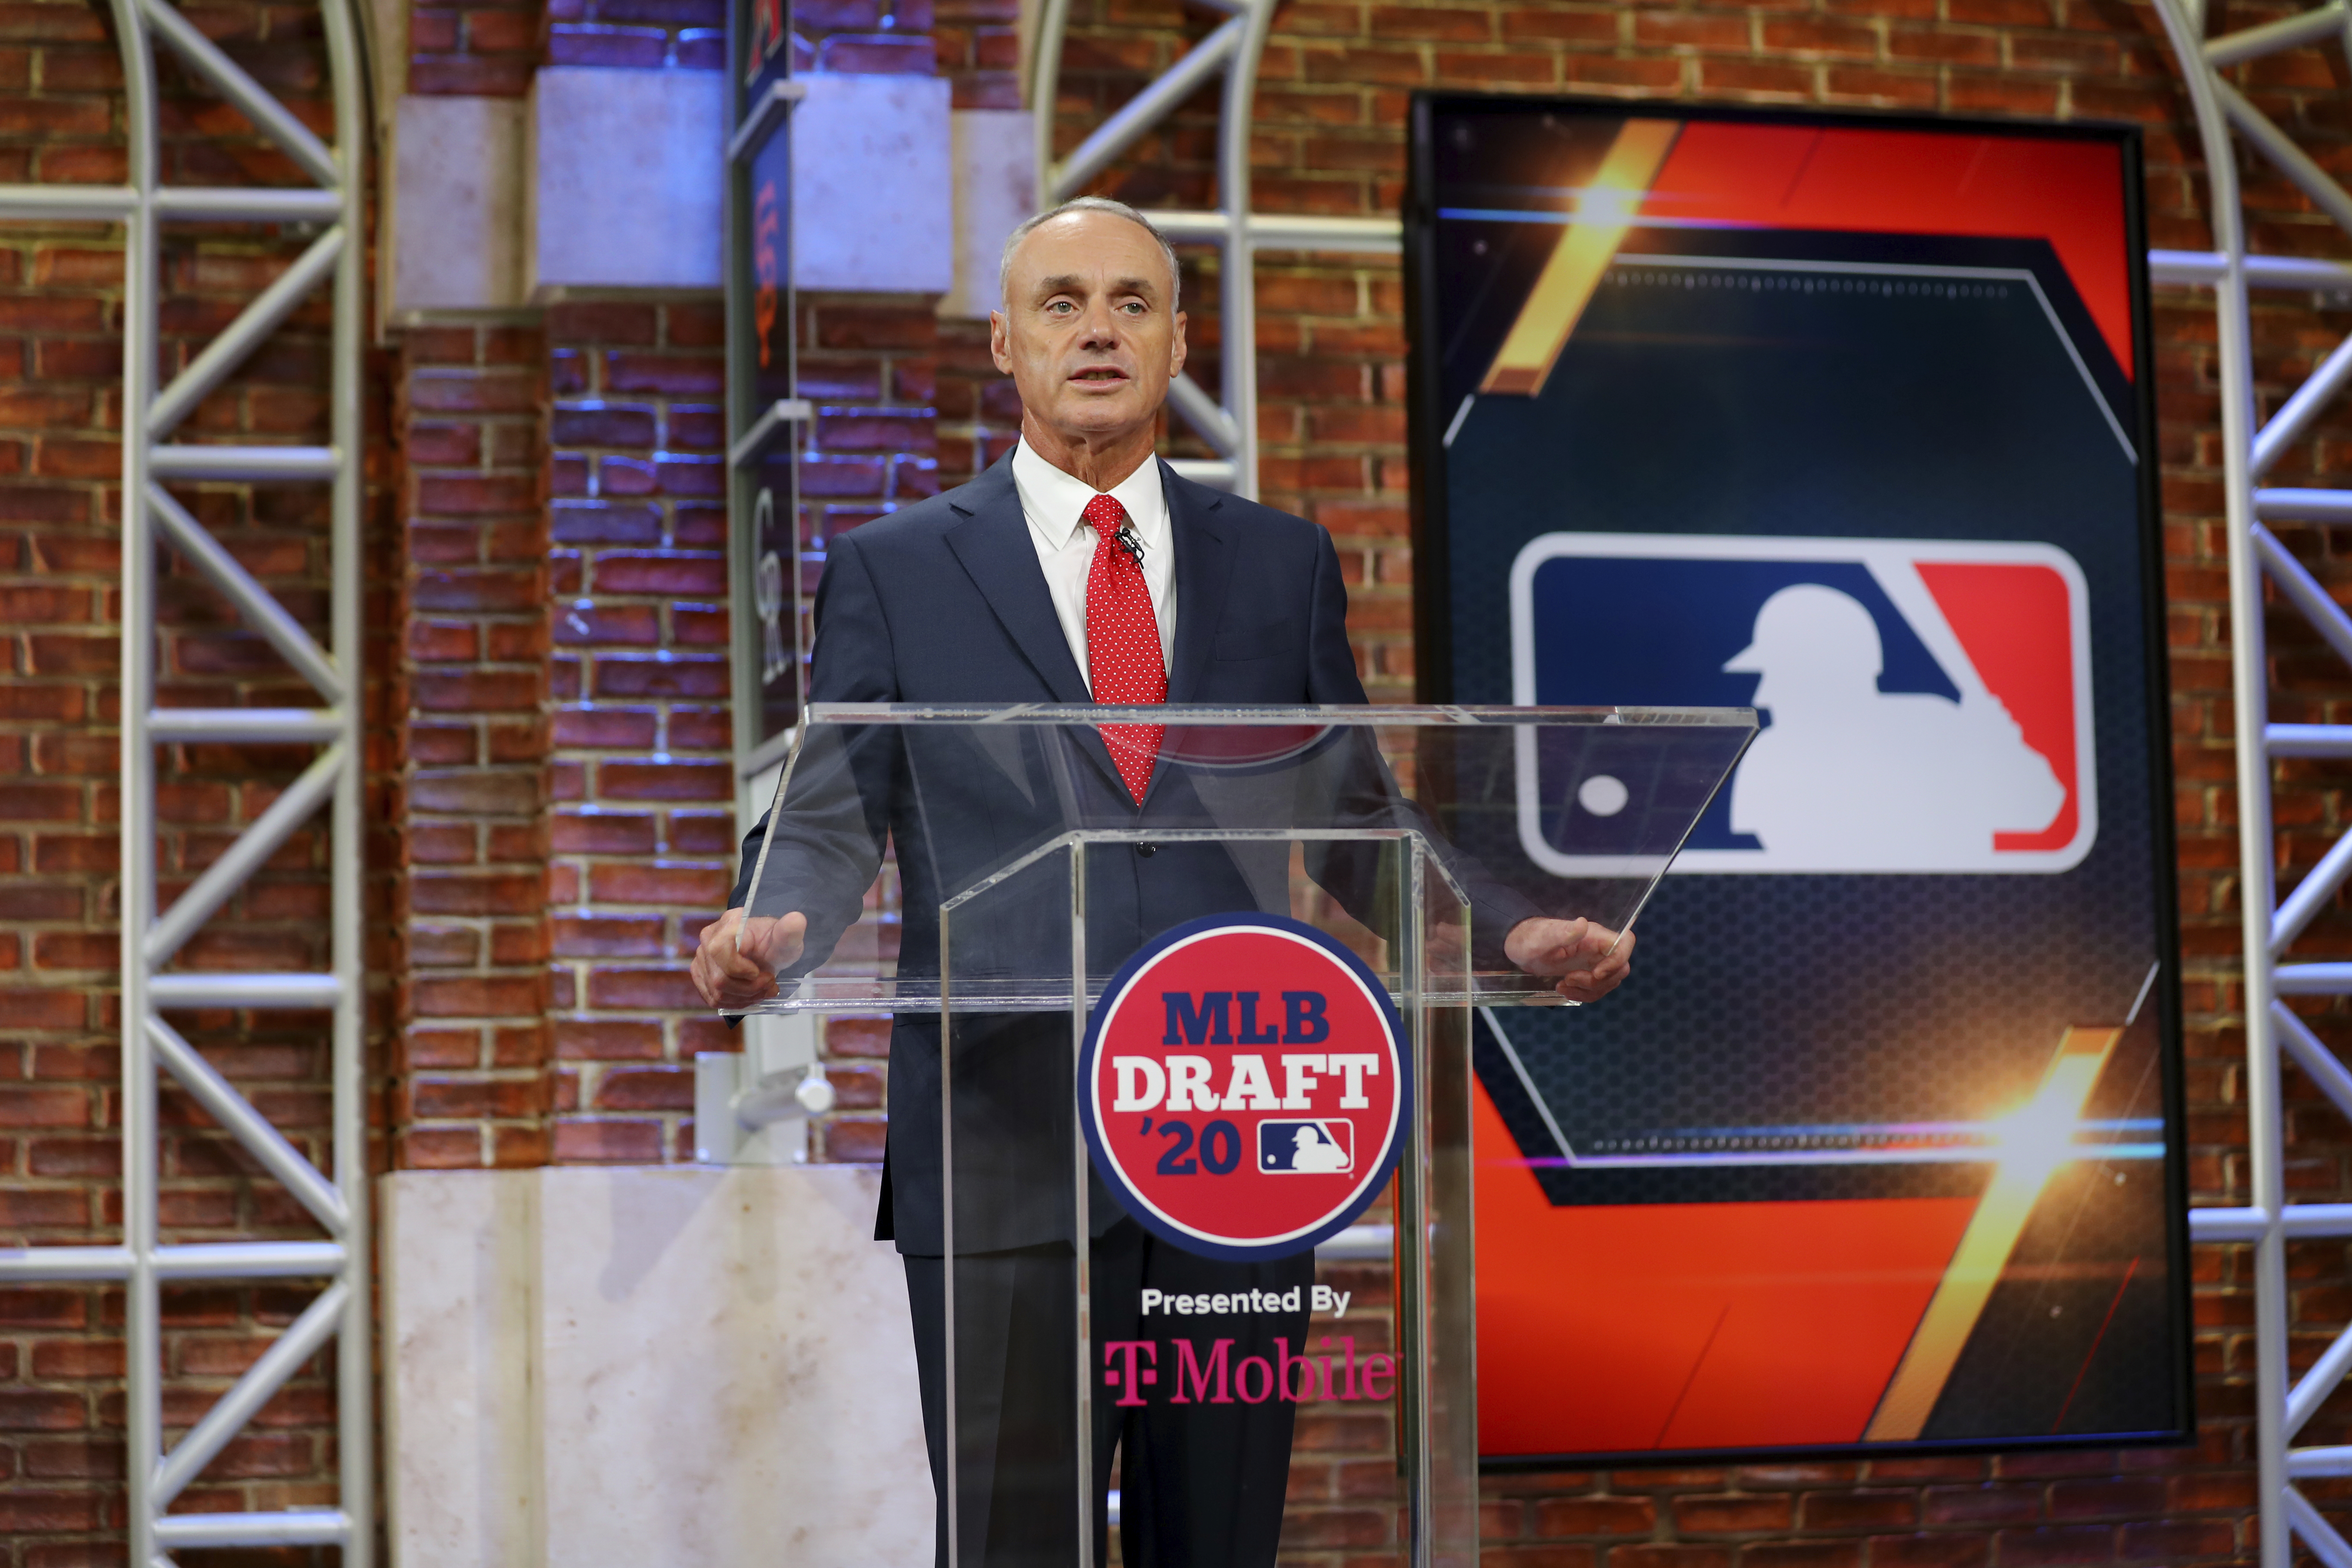 Baseball Commissioner Robert D. Manfred Jr. makes an opening statement during the baseball draft Wednesday, June 10, 2020 in Secaucus, N.J.